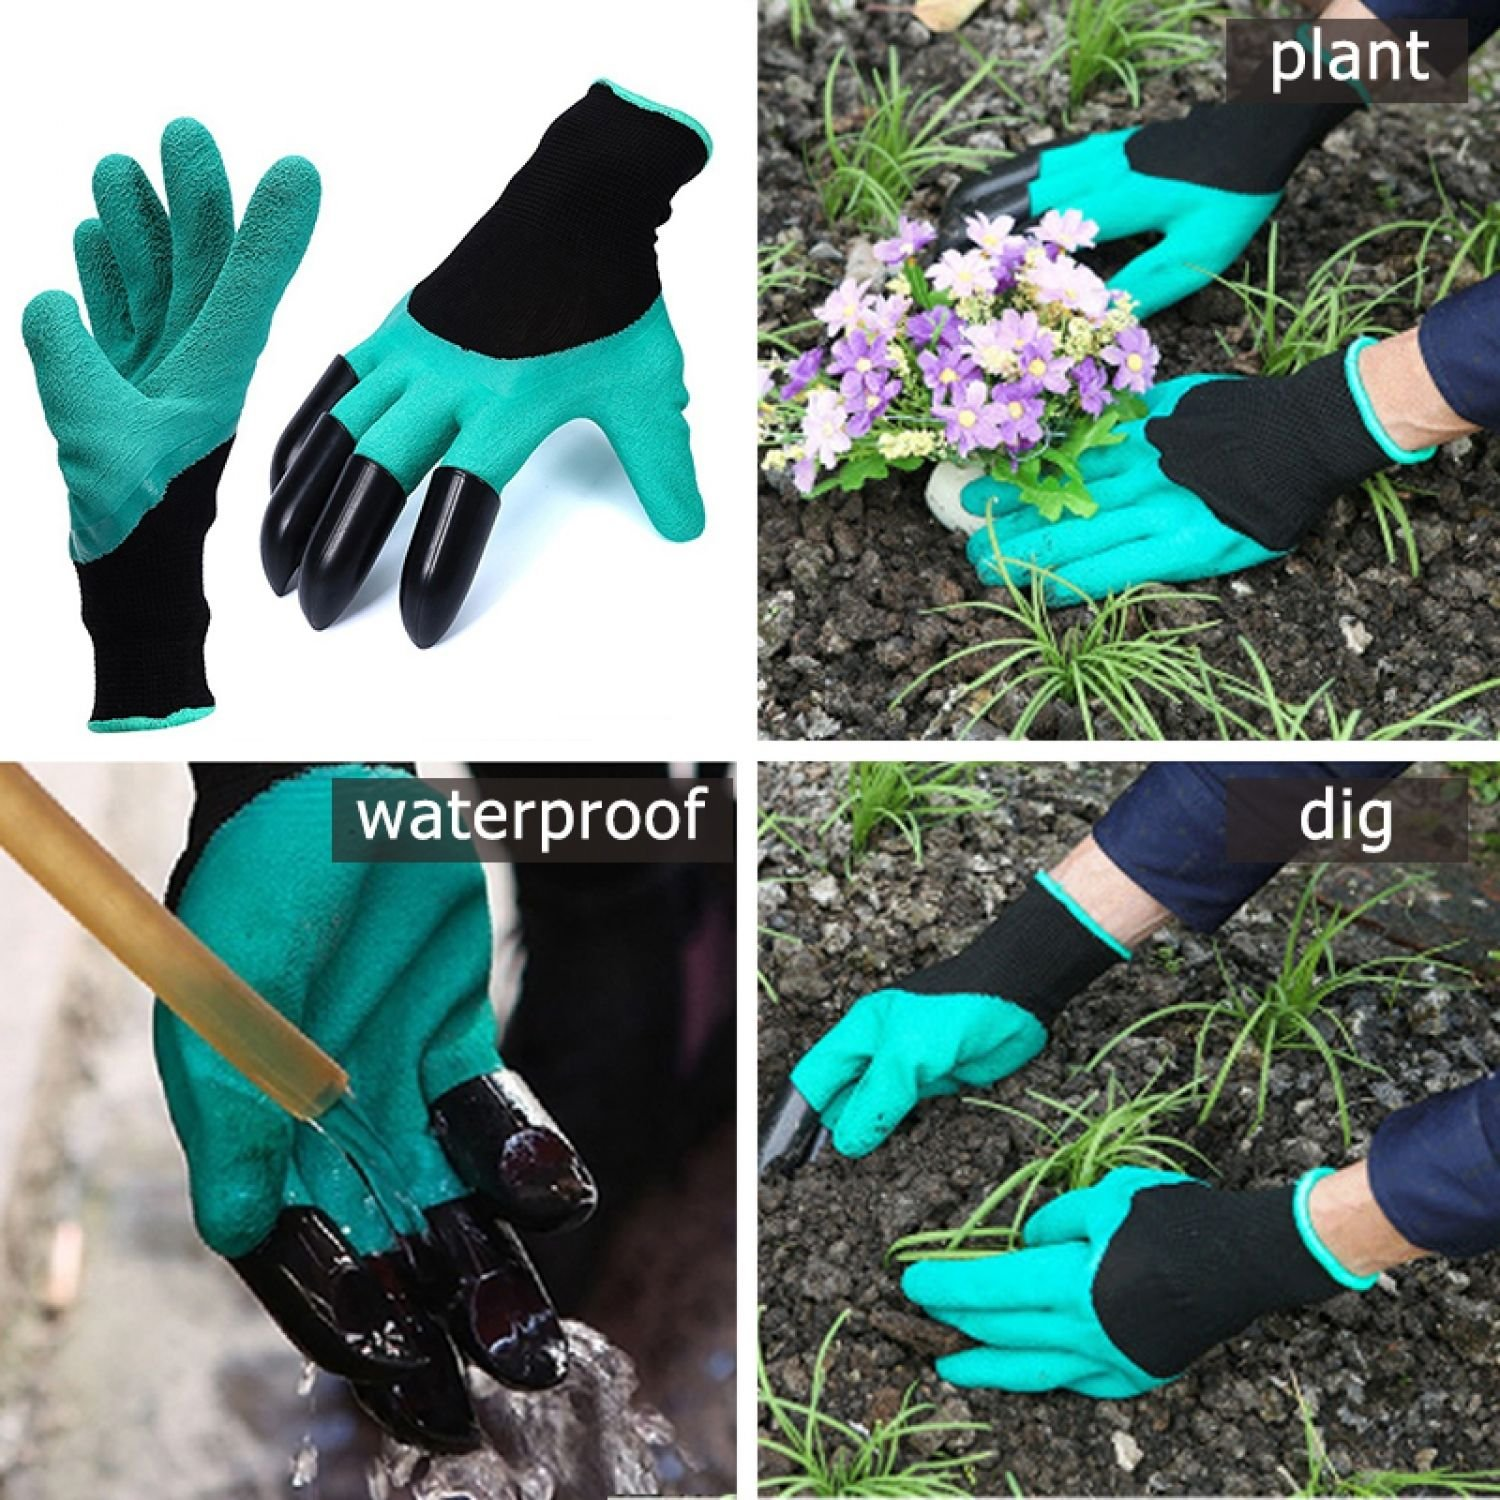 Garden Gloves for Digging & Planting with 4 ABS Plastic Claws Gardening Plastic